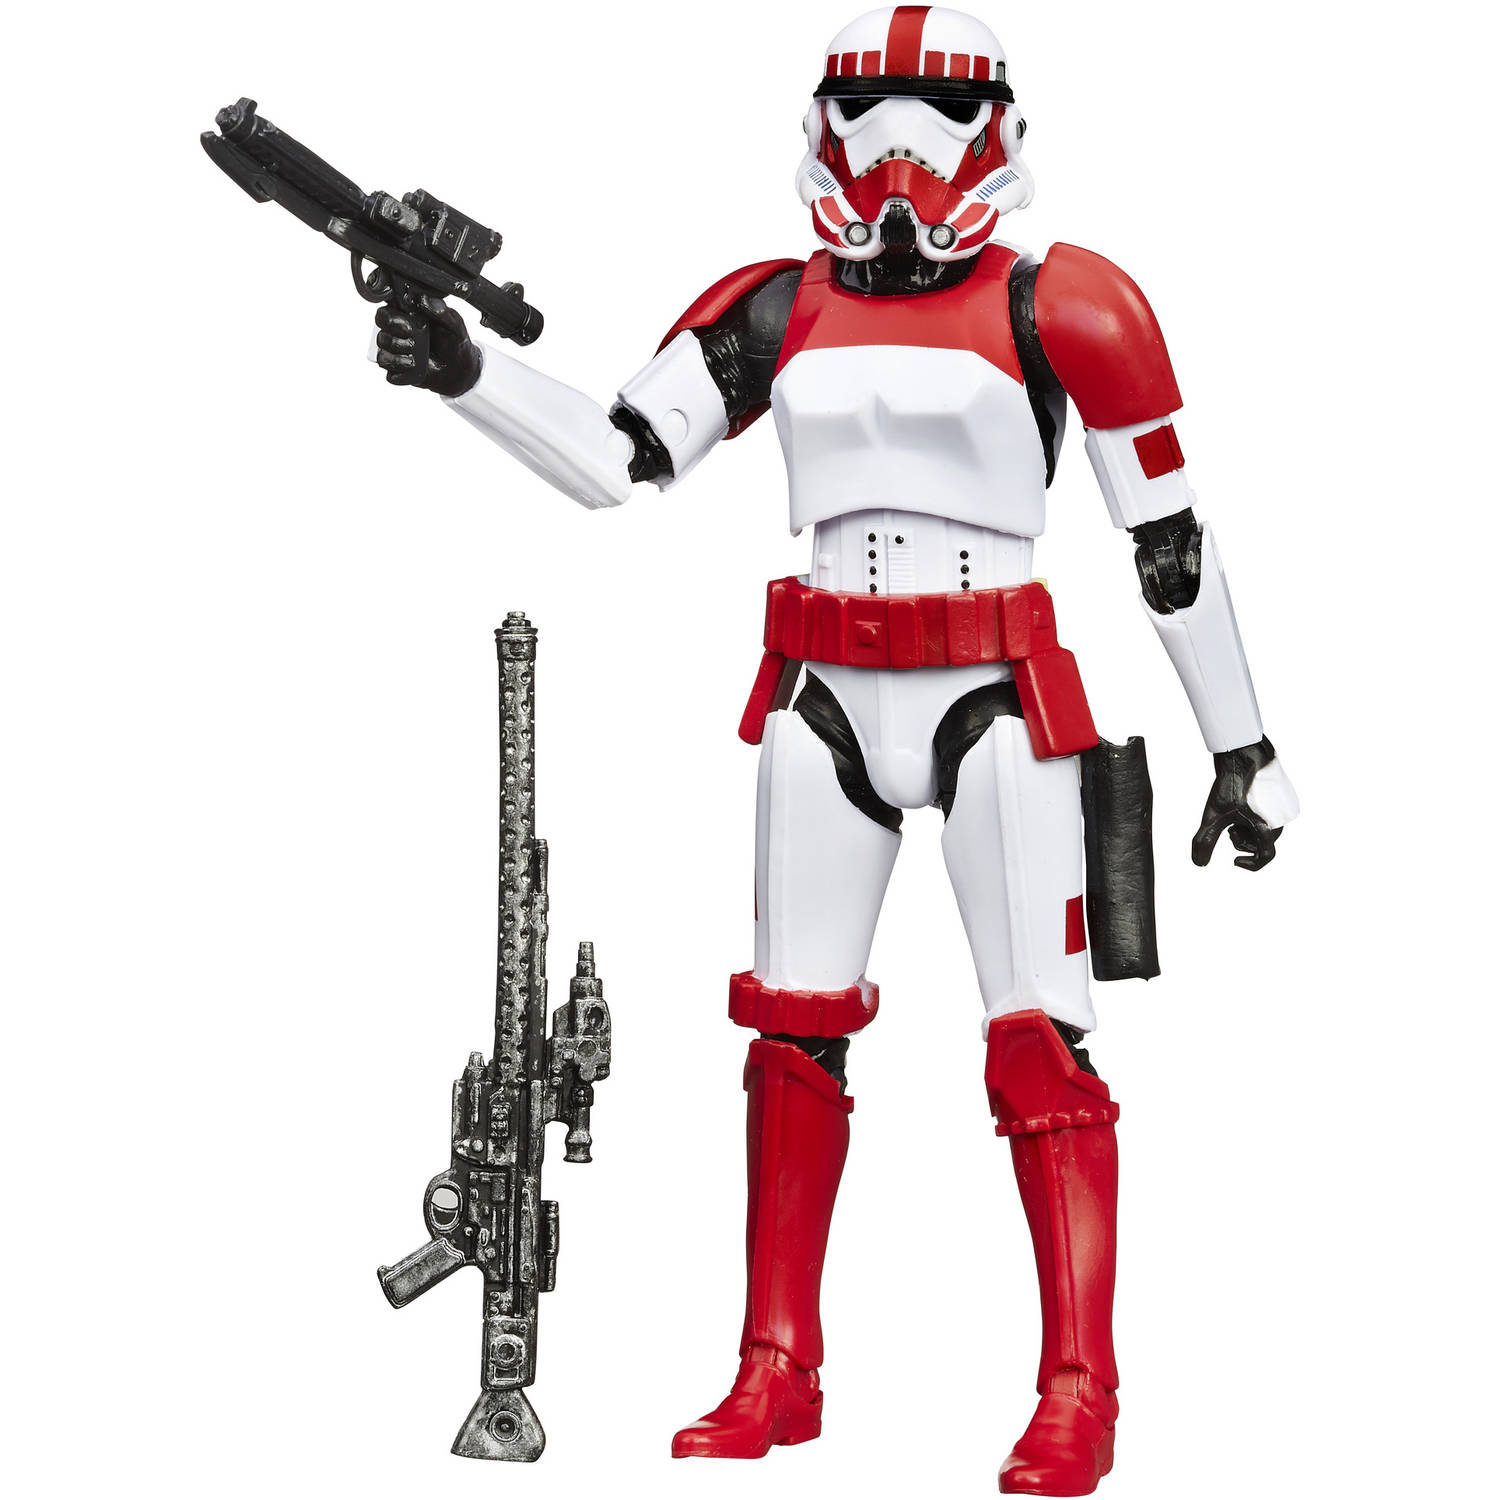 "Star Wars The Black Series 6"" Battlefront Imperial Shock Trooper by Hasbro"